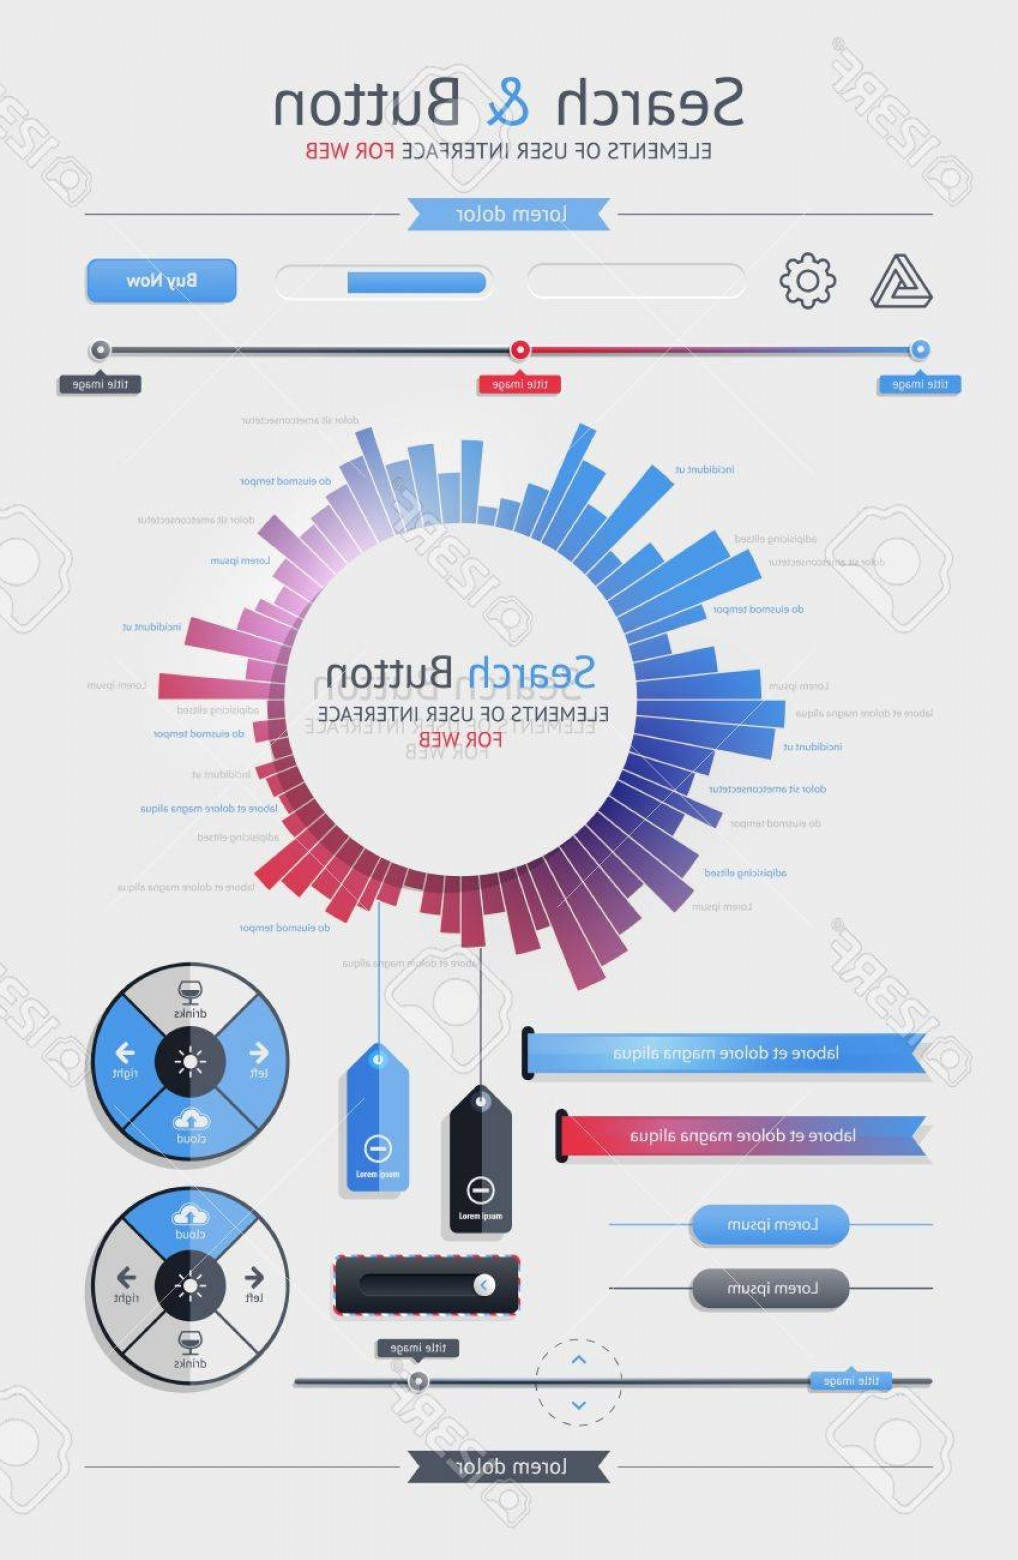 Vectors Buttons And Menus: Photoelements Of Infographics With Buttons And Menus